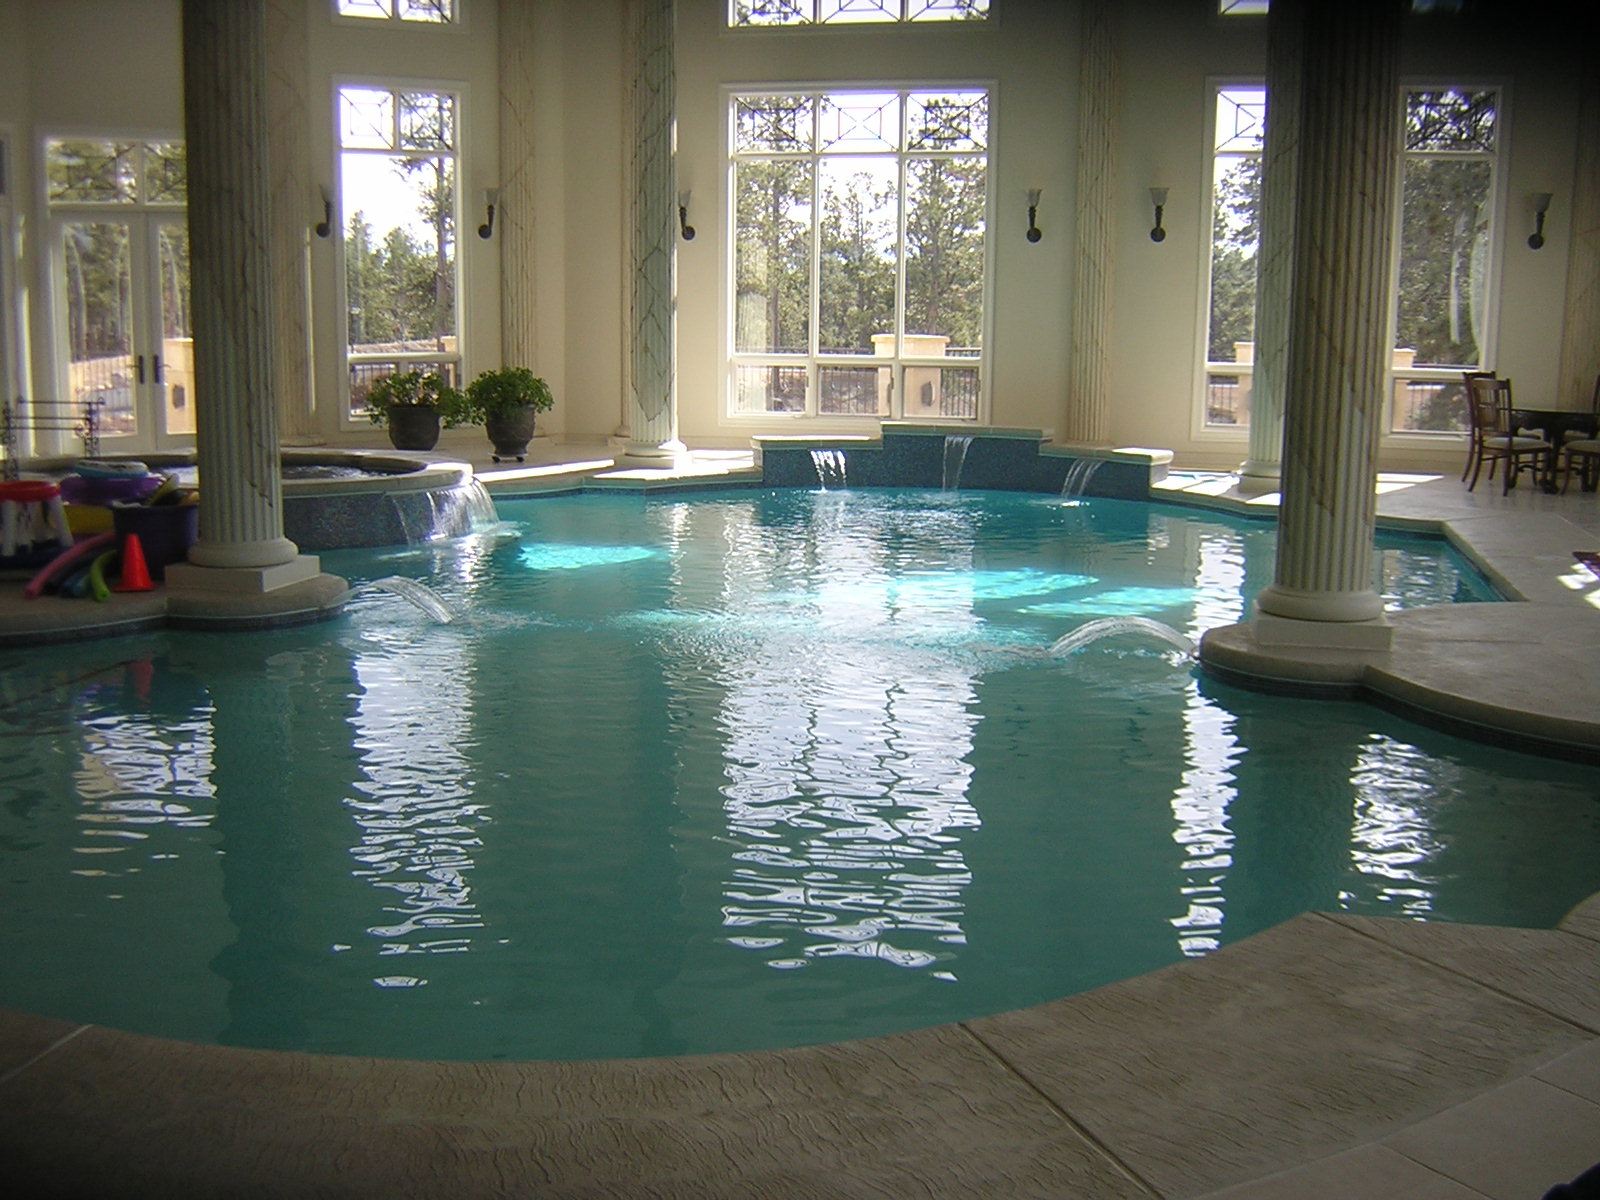 Pool and Spa, Colorado Springs, CO